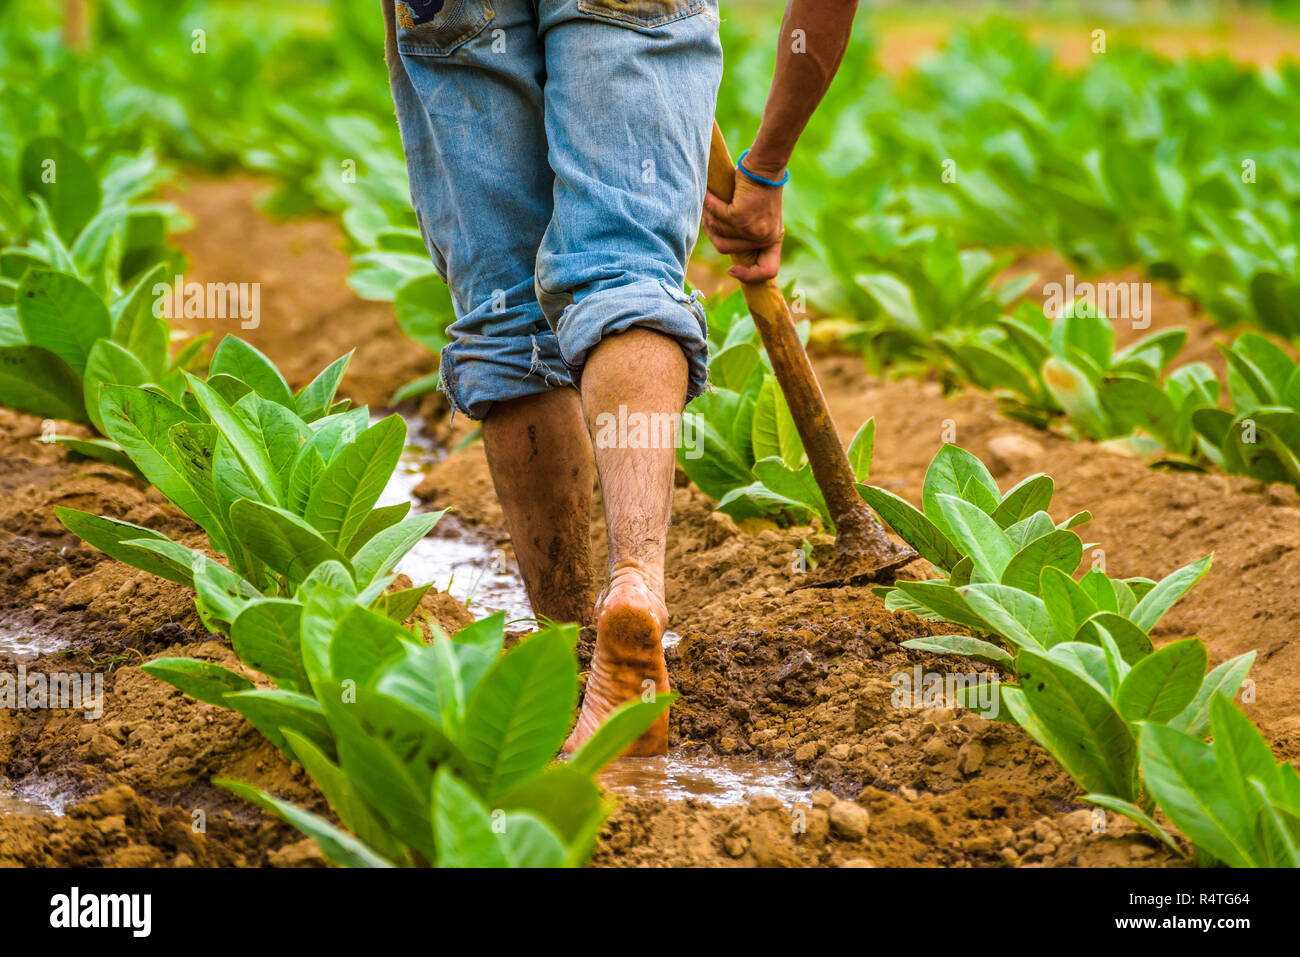 Cuban tobacco farmer working the soil on a field surrounded by green tobacco leaves. Man hoeing ground bare feet in tobacco plantation. Vinales valley - Stock Image